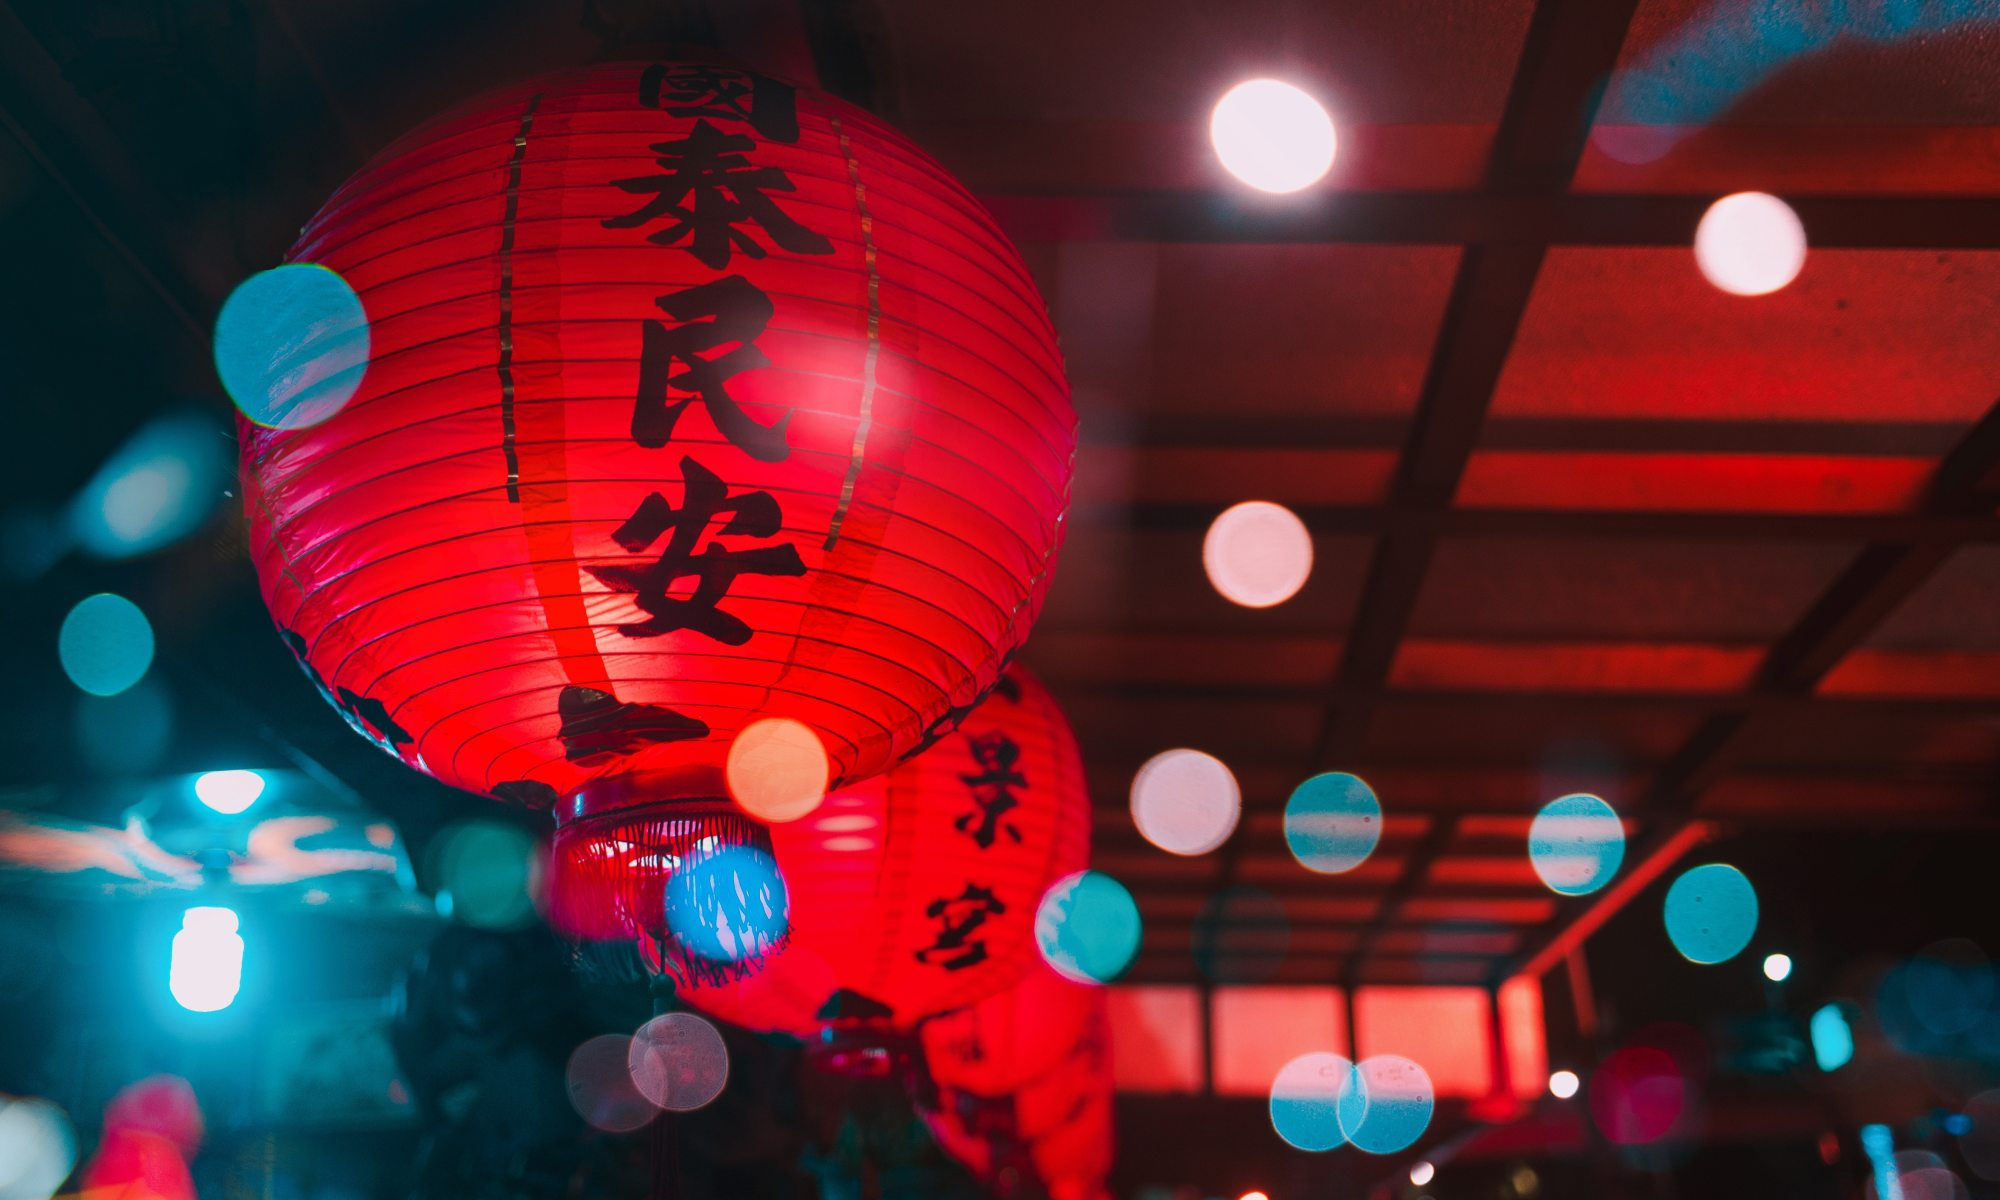 Red sky lanterns with Chinese characters